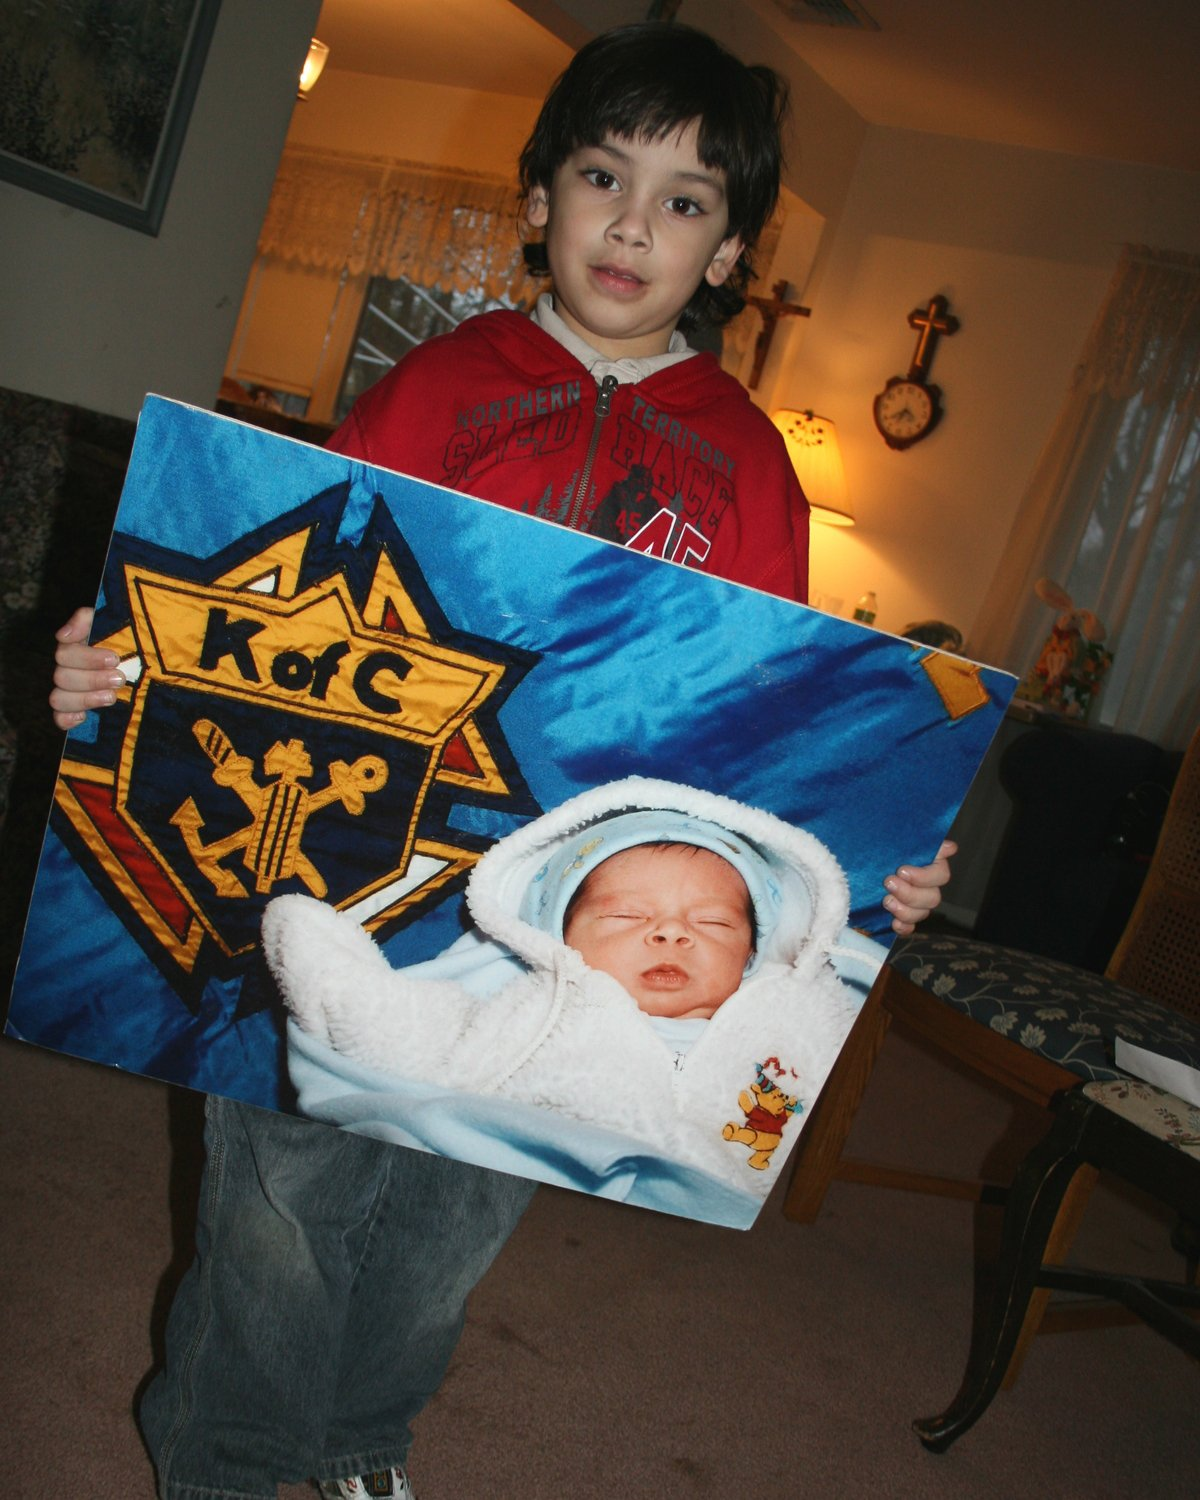 Jonathan holding a Knights of Columbus poster